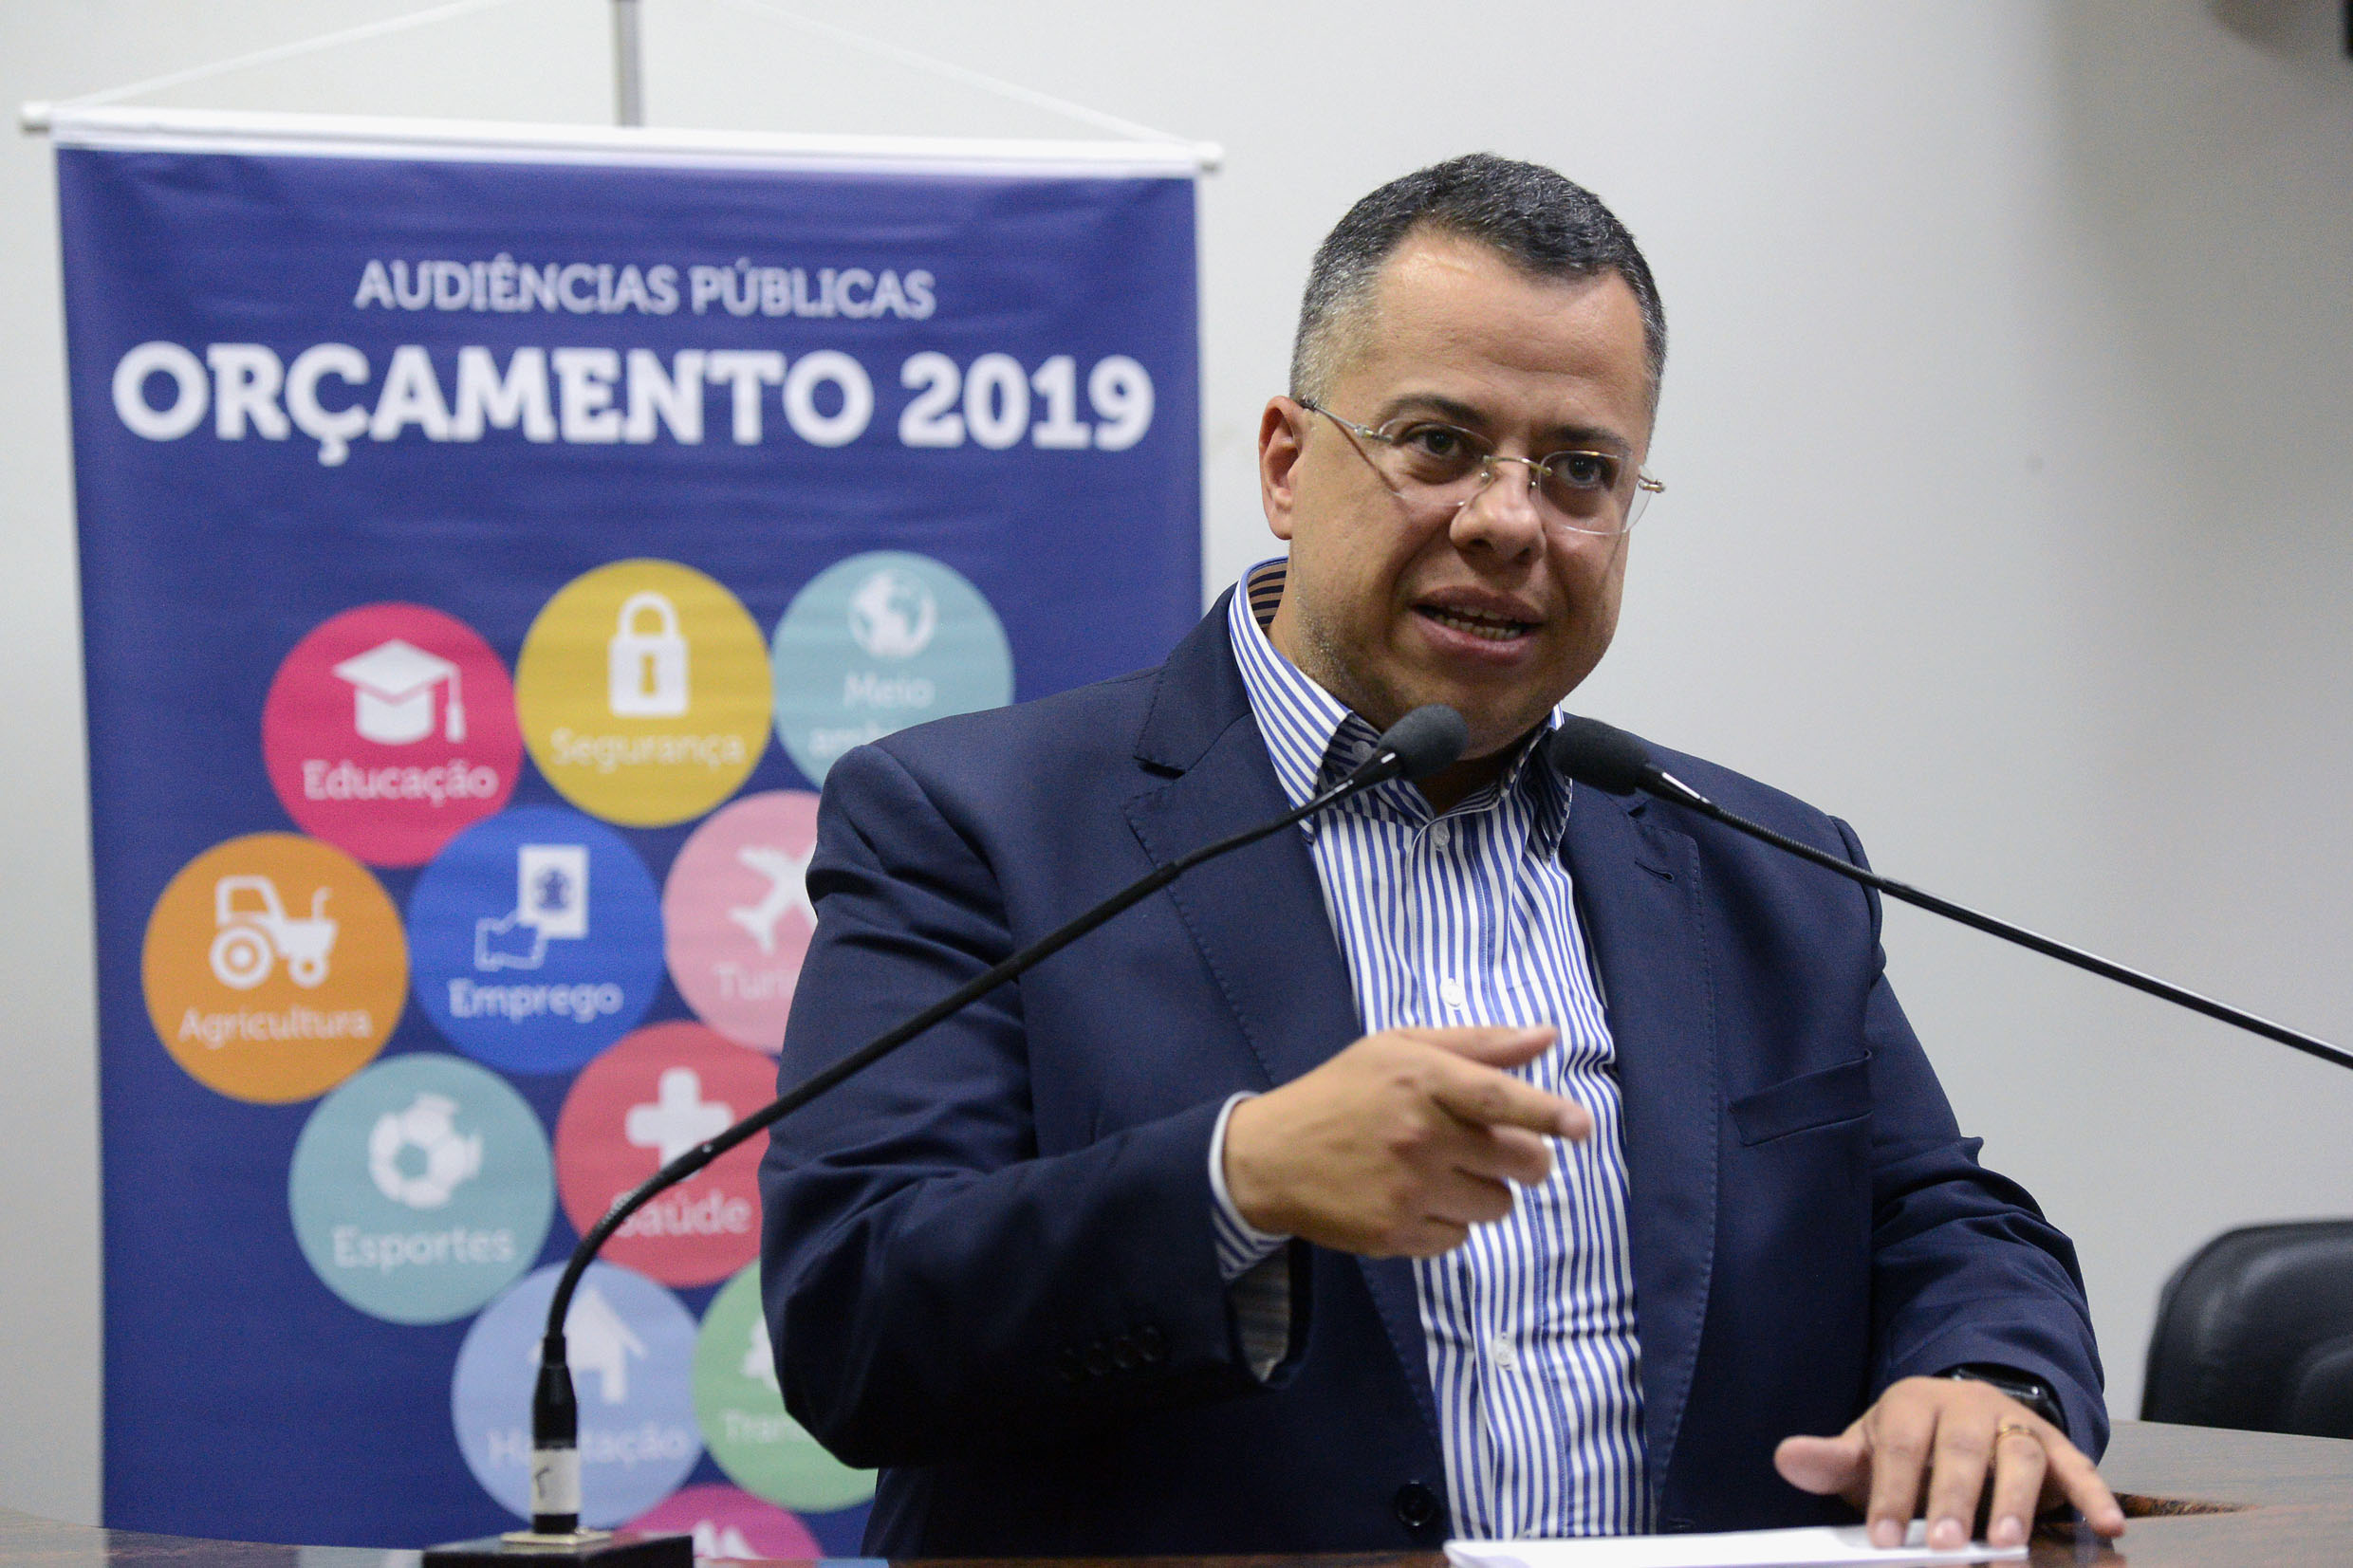 Wellington Moura<a style='float:right' href='https://www3.al.sp.gov.br/repositorio/noticia/N-06-2018/fg224985.jpg' target=_blank><img src='/_img/material-file-download-white.png' width='14px' alt='Clique para baixar a imagem'></a>